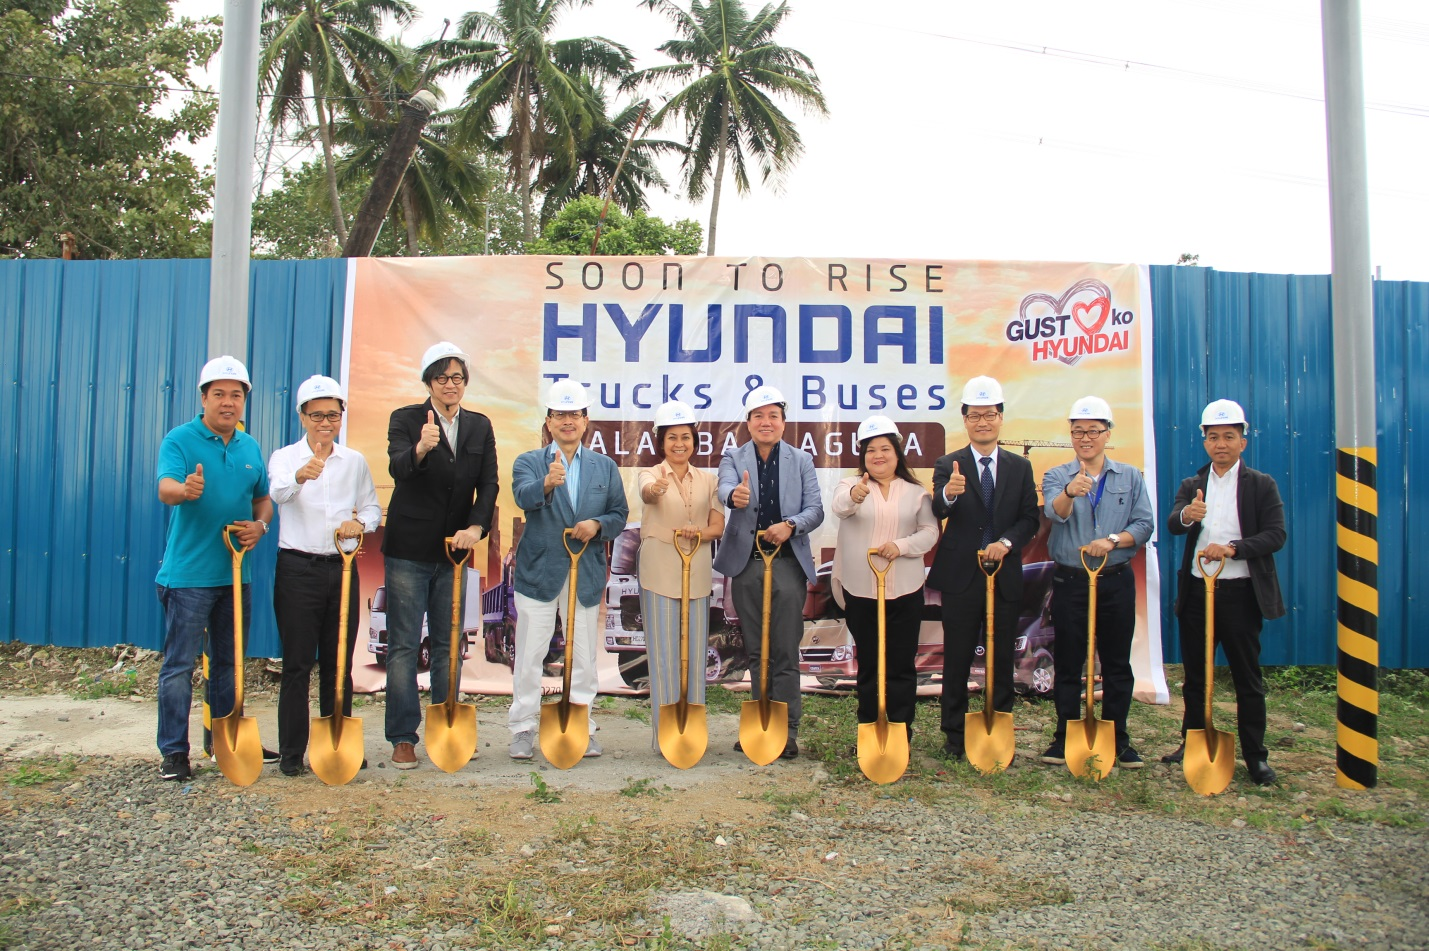 Hyundai Breaks Ground of New Commercial Vehicle Dealership in Laguna